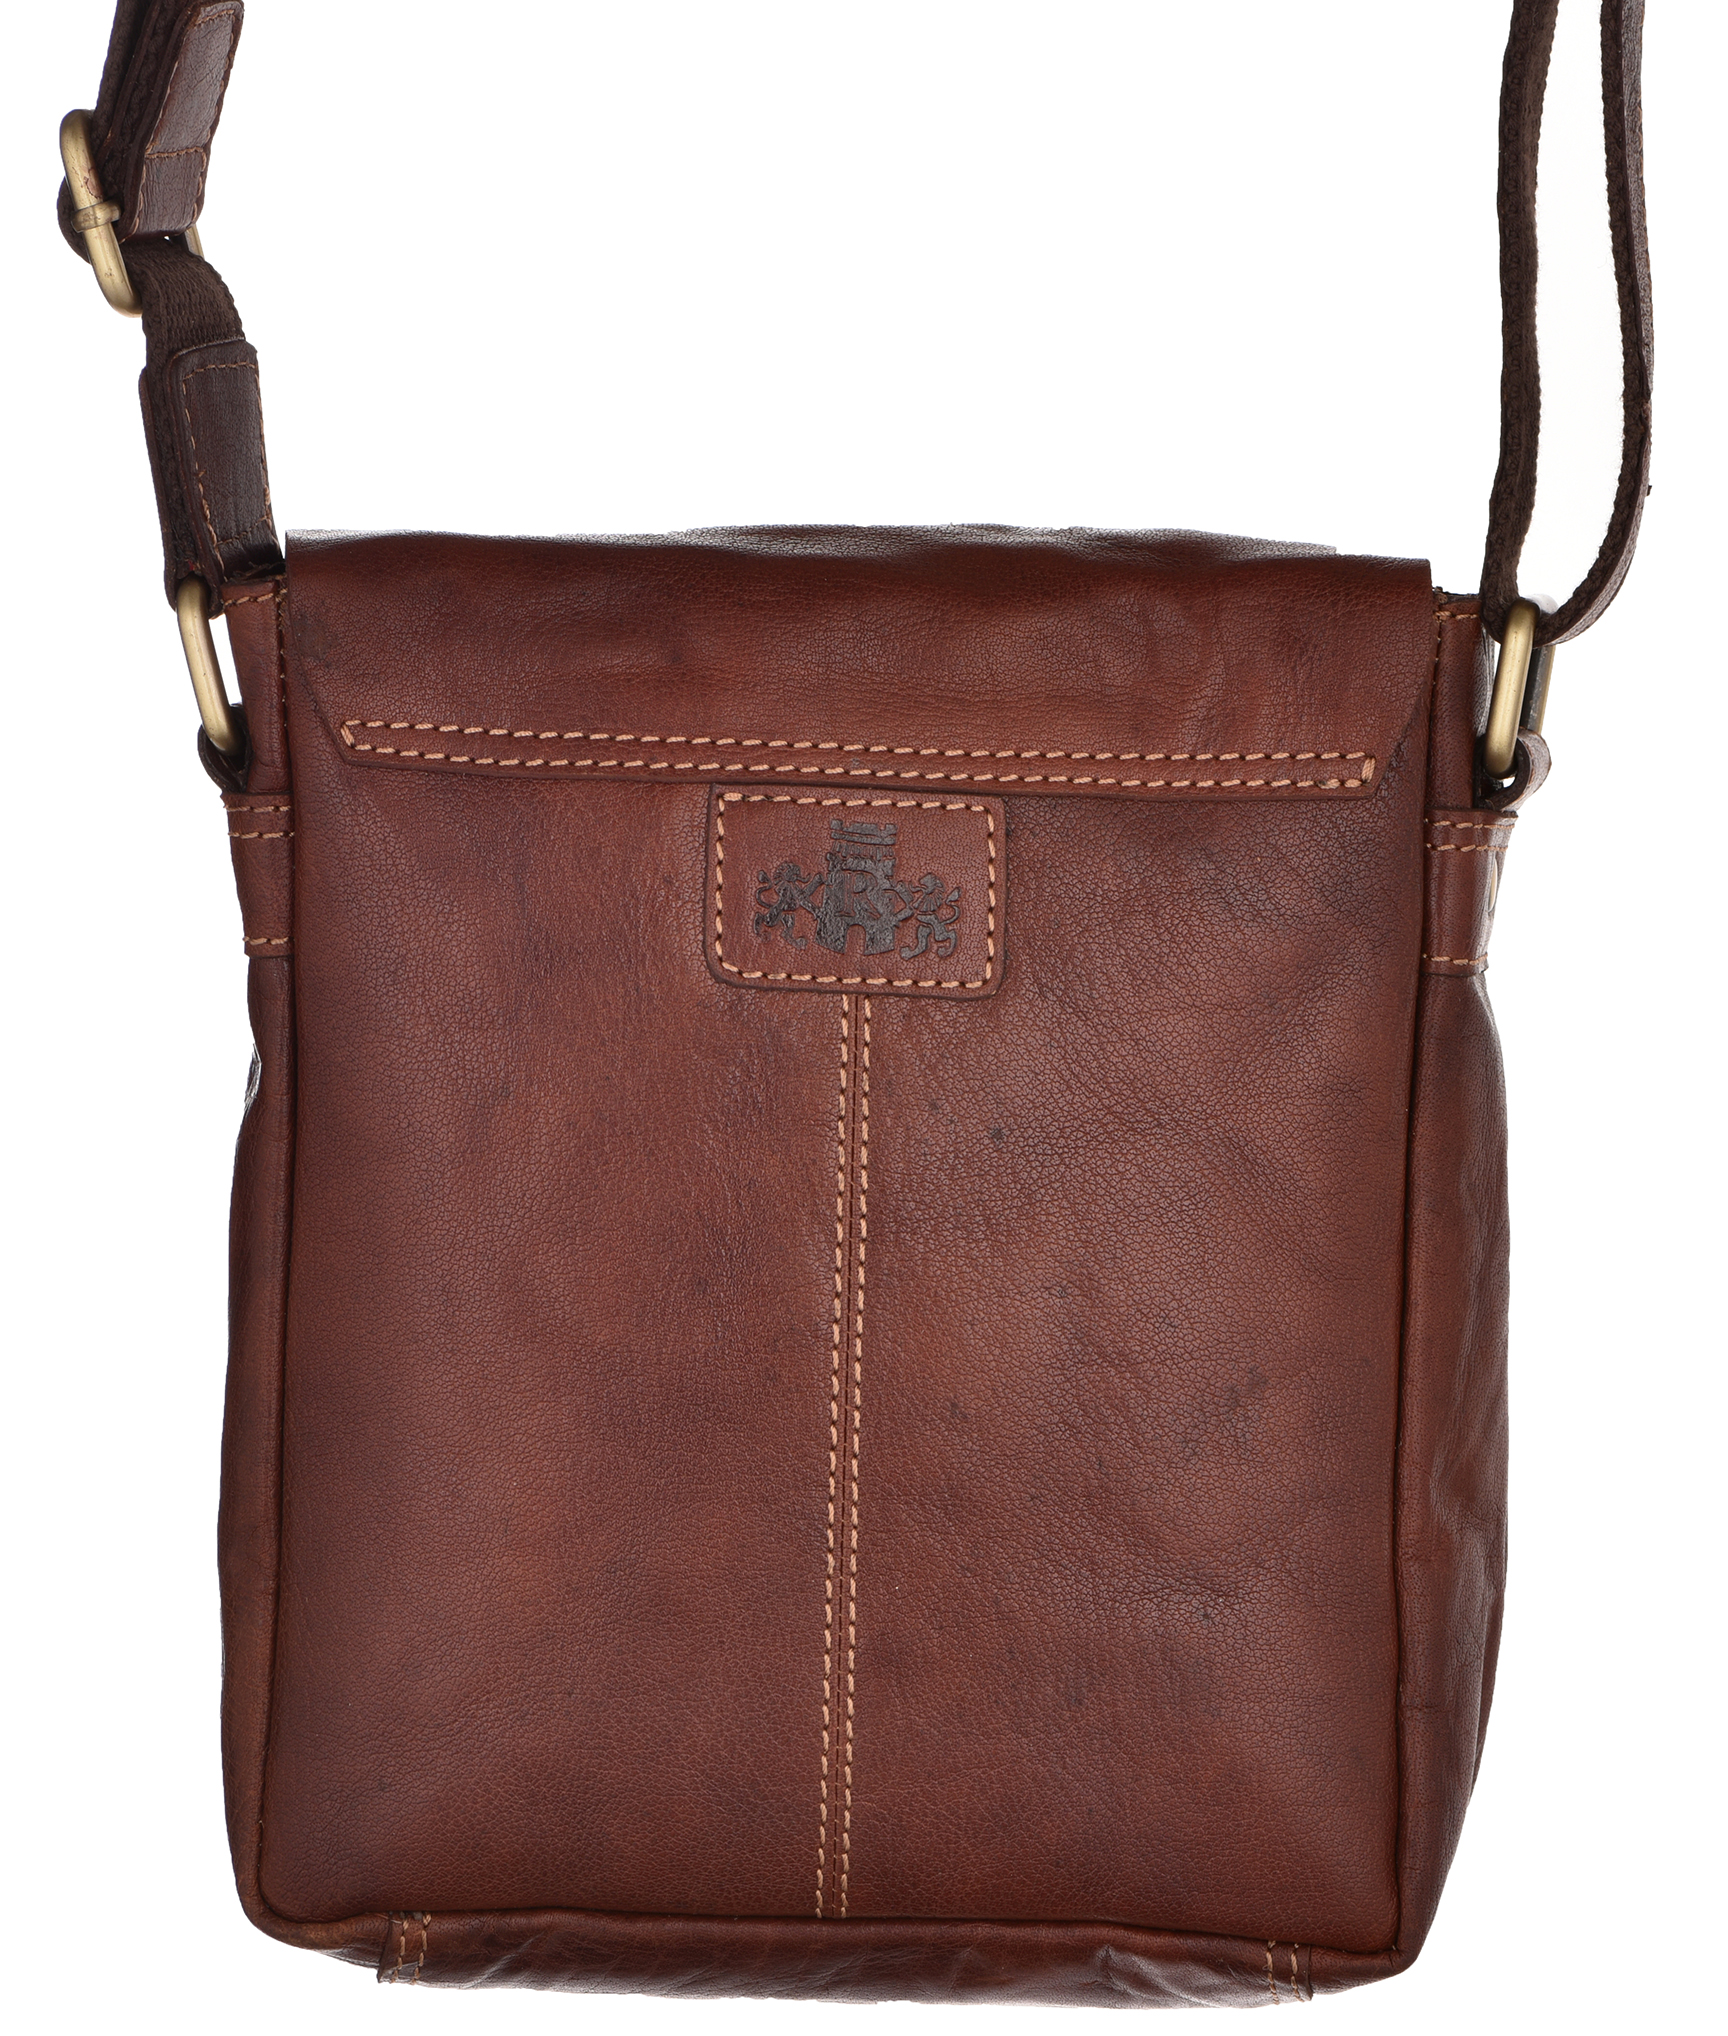 Mens Womens Small Vintage Leather Flap